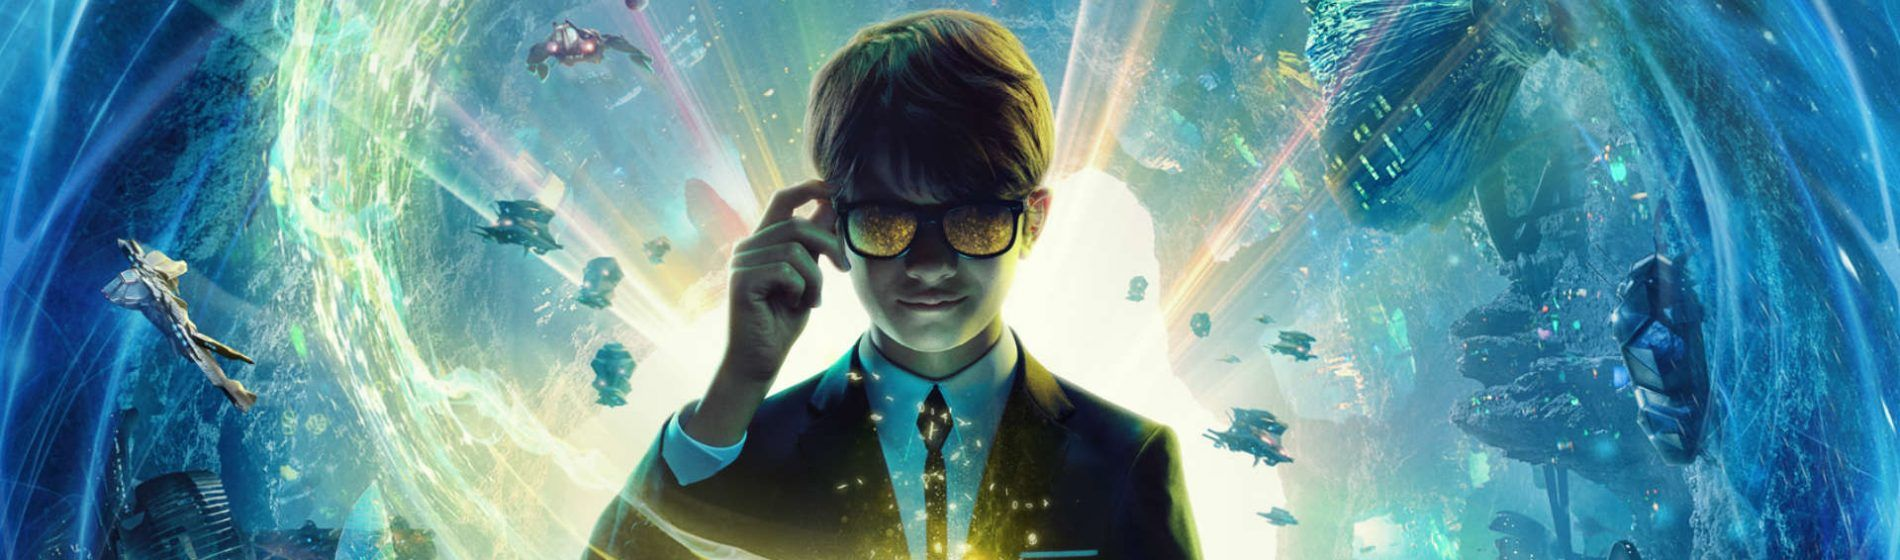 Artemis Fowl Trailer: Eoin Colfer's Beloved Fantasy Series Springs